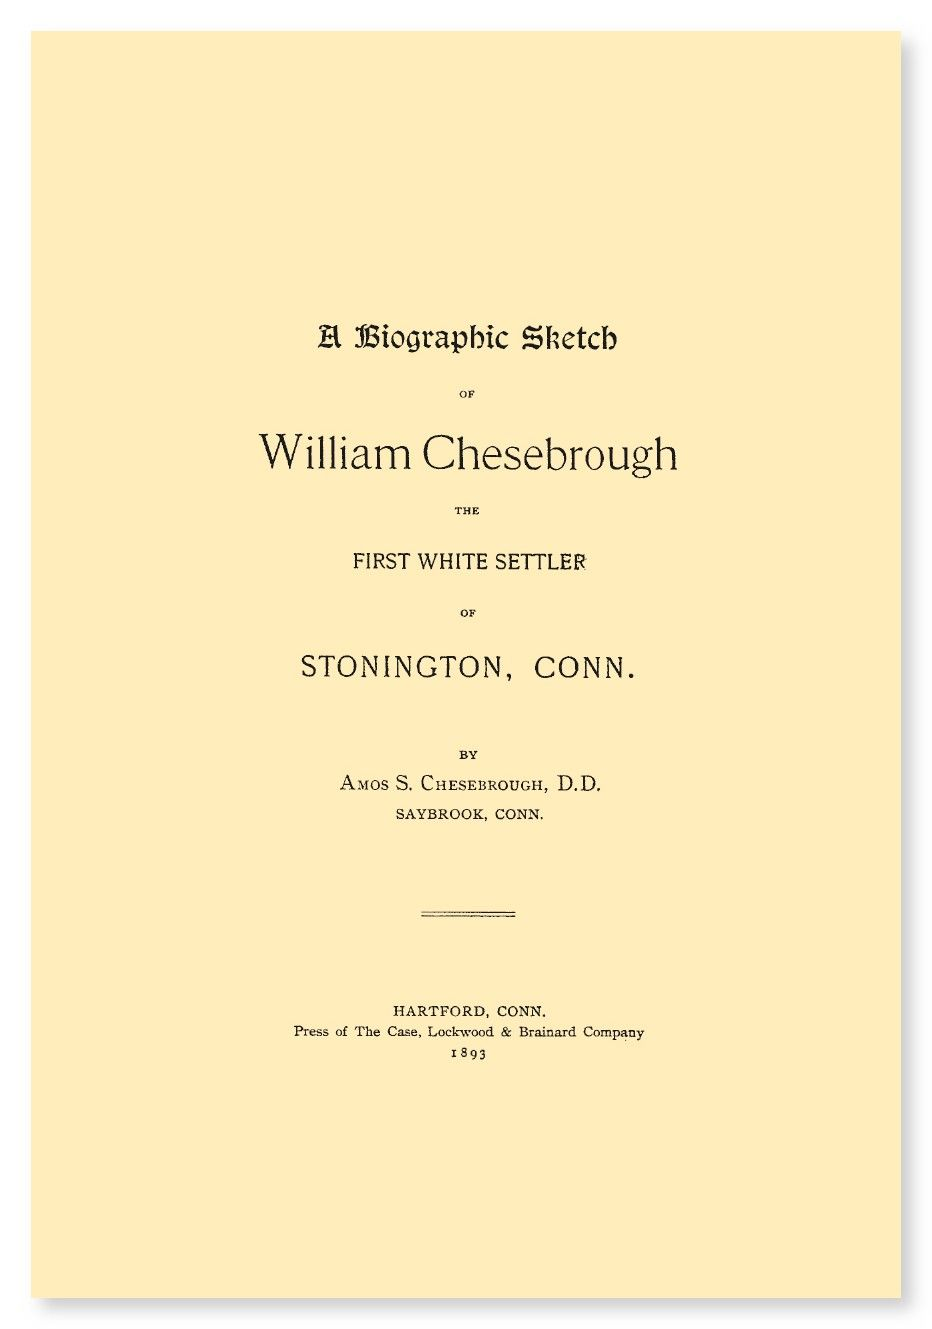 A Biographic Sketch of William Chesebrough | eBook available from RootsPoint for only $4.99.